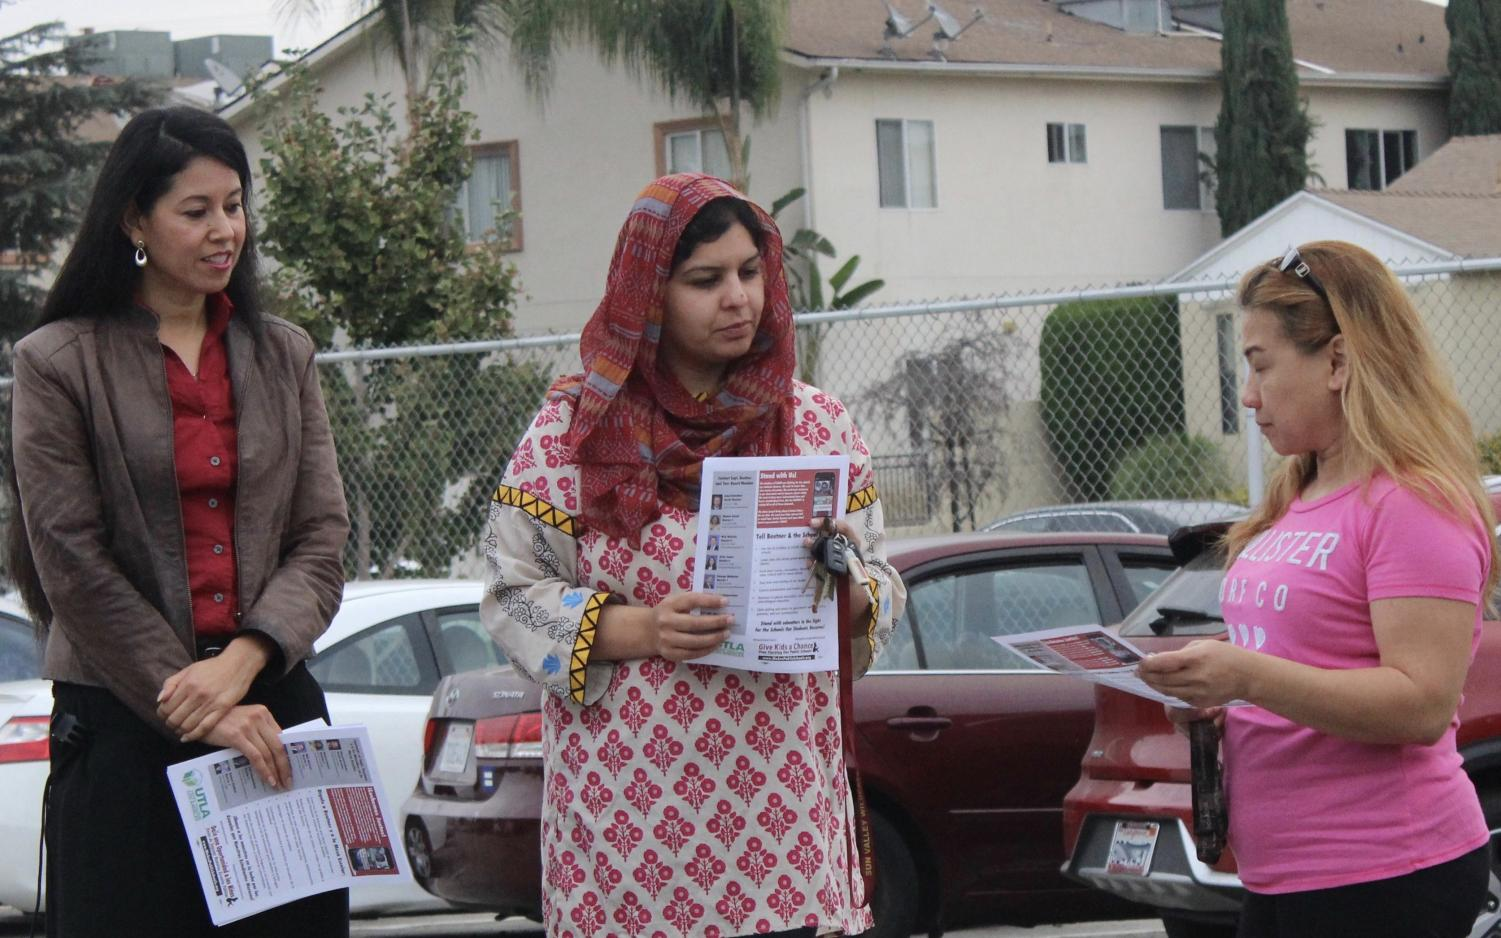 Spanish teacher Marta Rodriguez and resource teacher Sadia Aziz talk with a parent when teachers distributed fliers on union contract negotiations with the school district back in October.